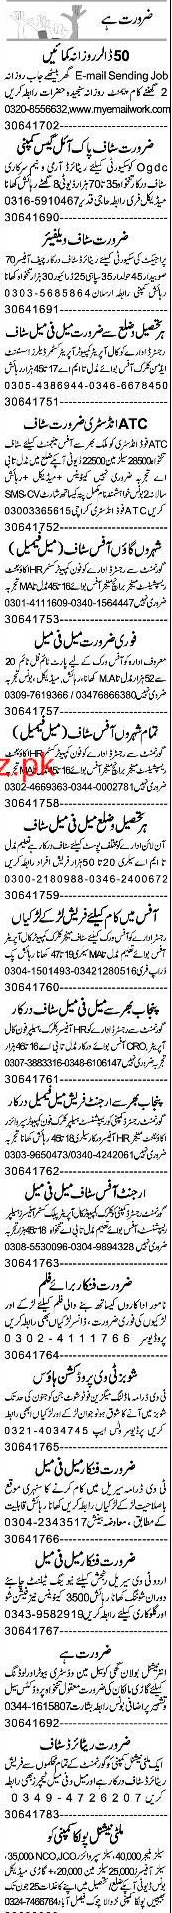 Data Entry Operators, Security Guards  Wanted